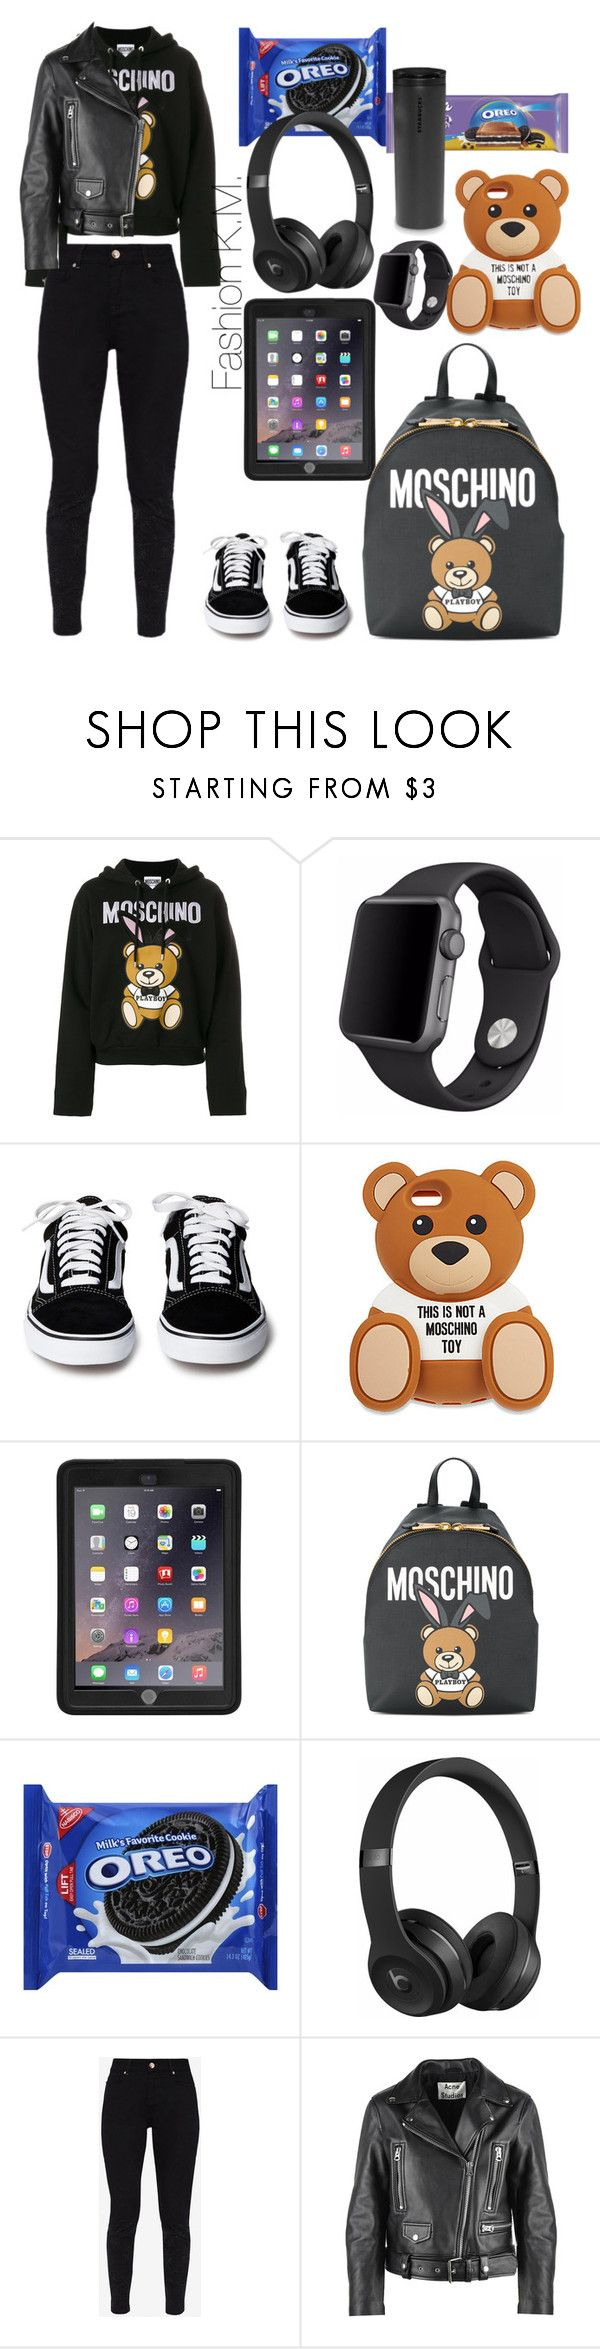 """""""This is not a Moschino toy🐻"""" by karinemarutyan ❤ liked on Polyvore featuring Moschino, Apple, Griffin, Beats by Dr. Dre, Ted Baker and Acne Studios"""